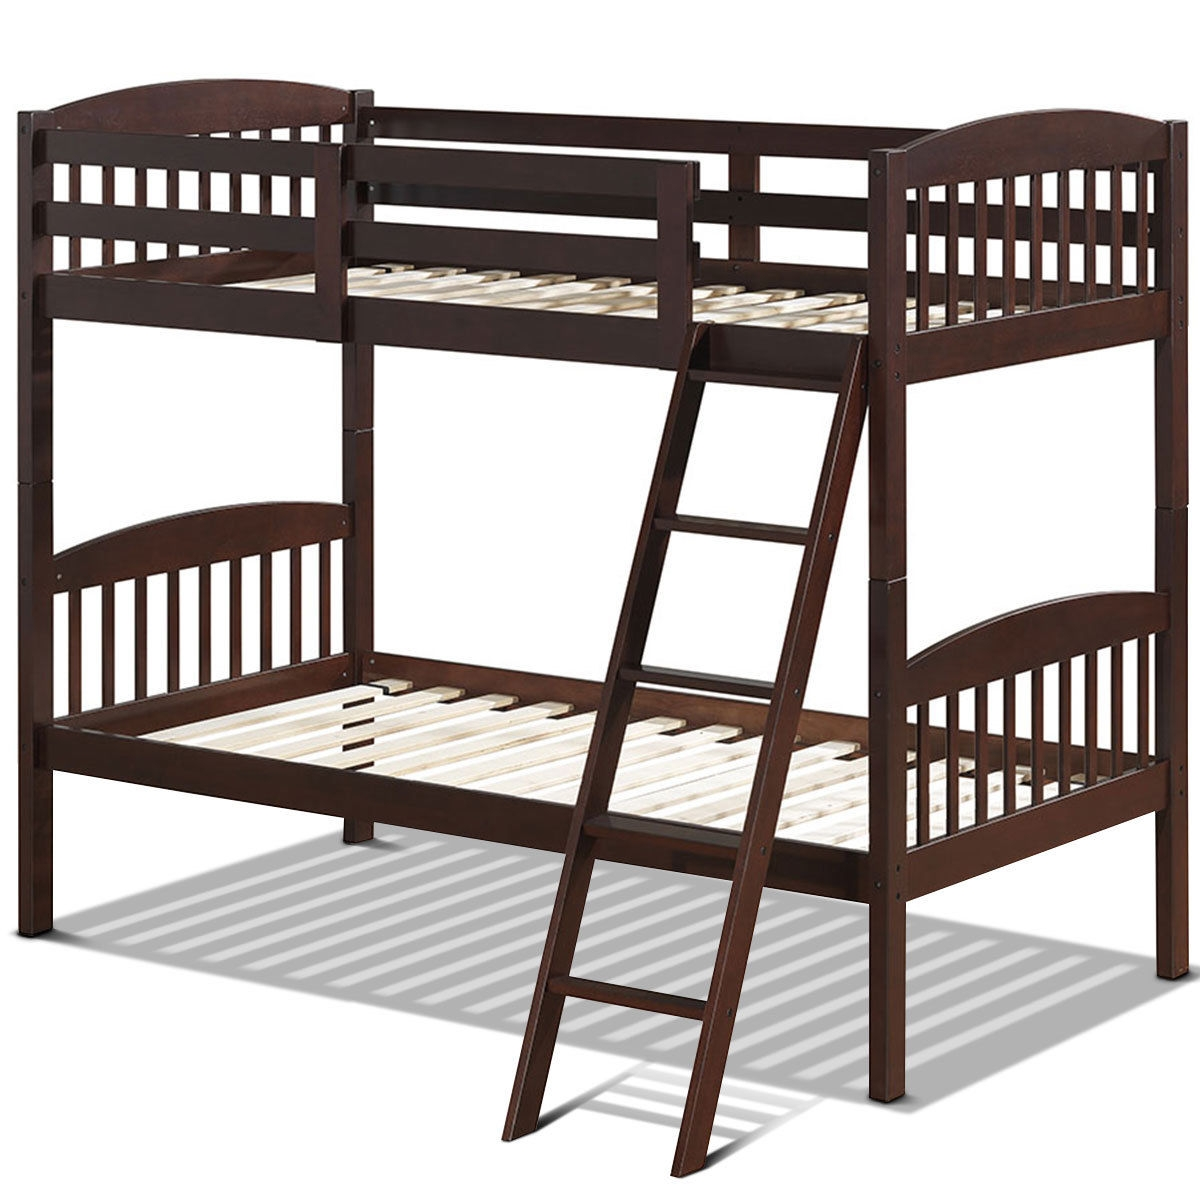 Image of Solid Wood Twin Bunk Beds with Detachable Ladder